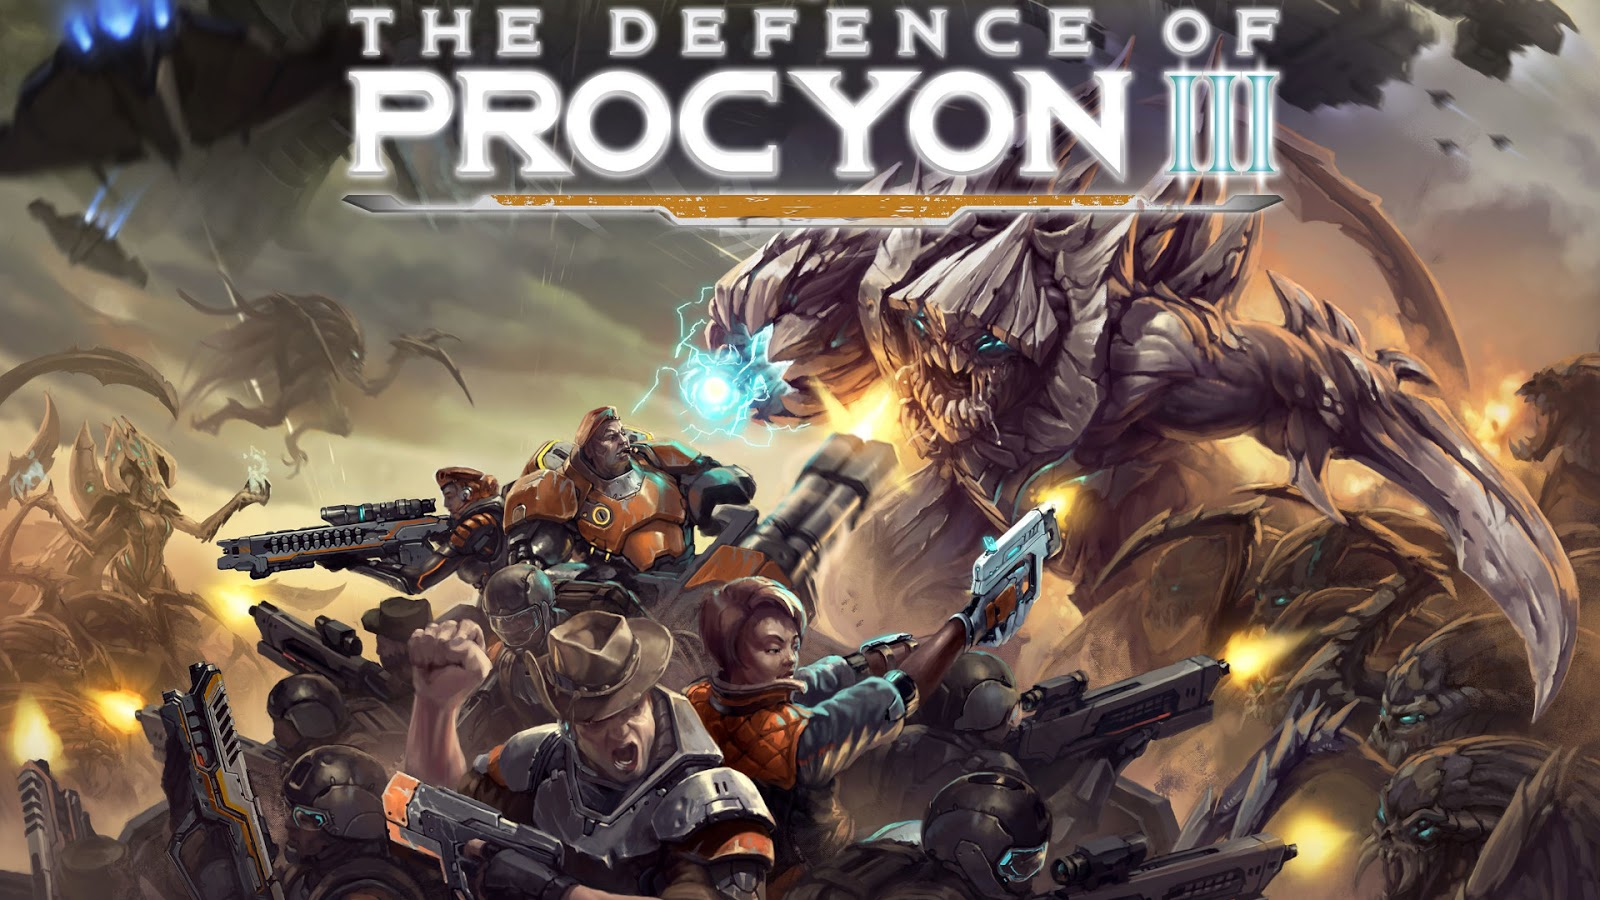 2020 Most Anticipated Games Best Kickstarters The Defence of Procyon 3 Board Game